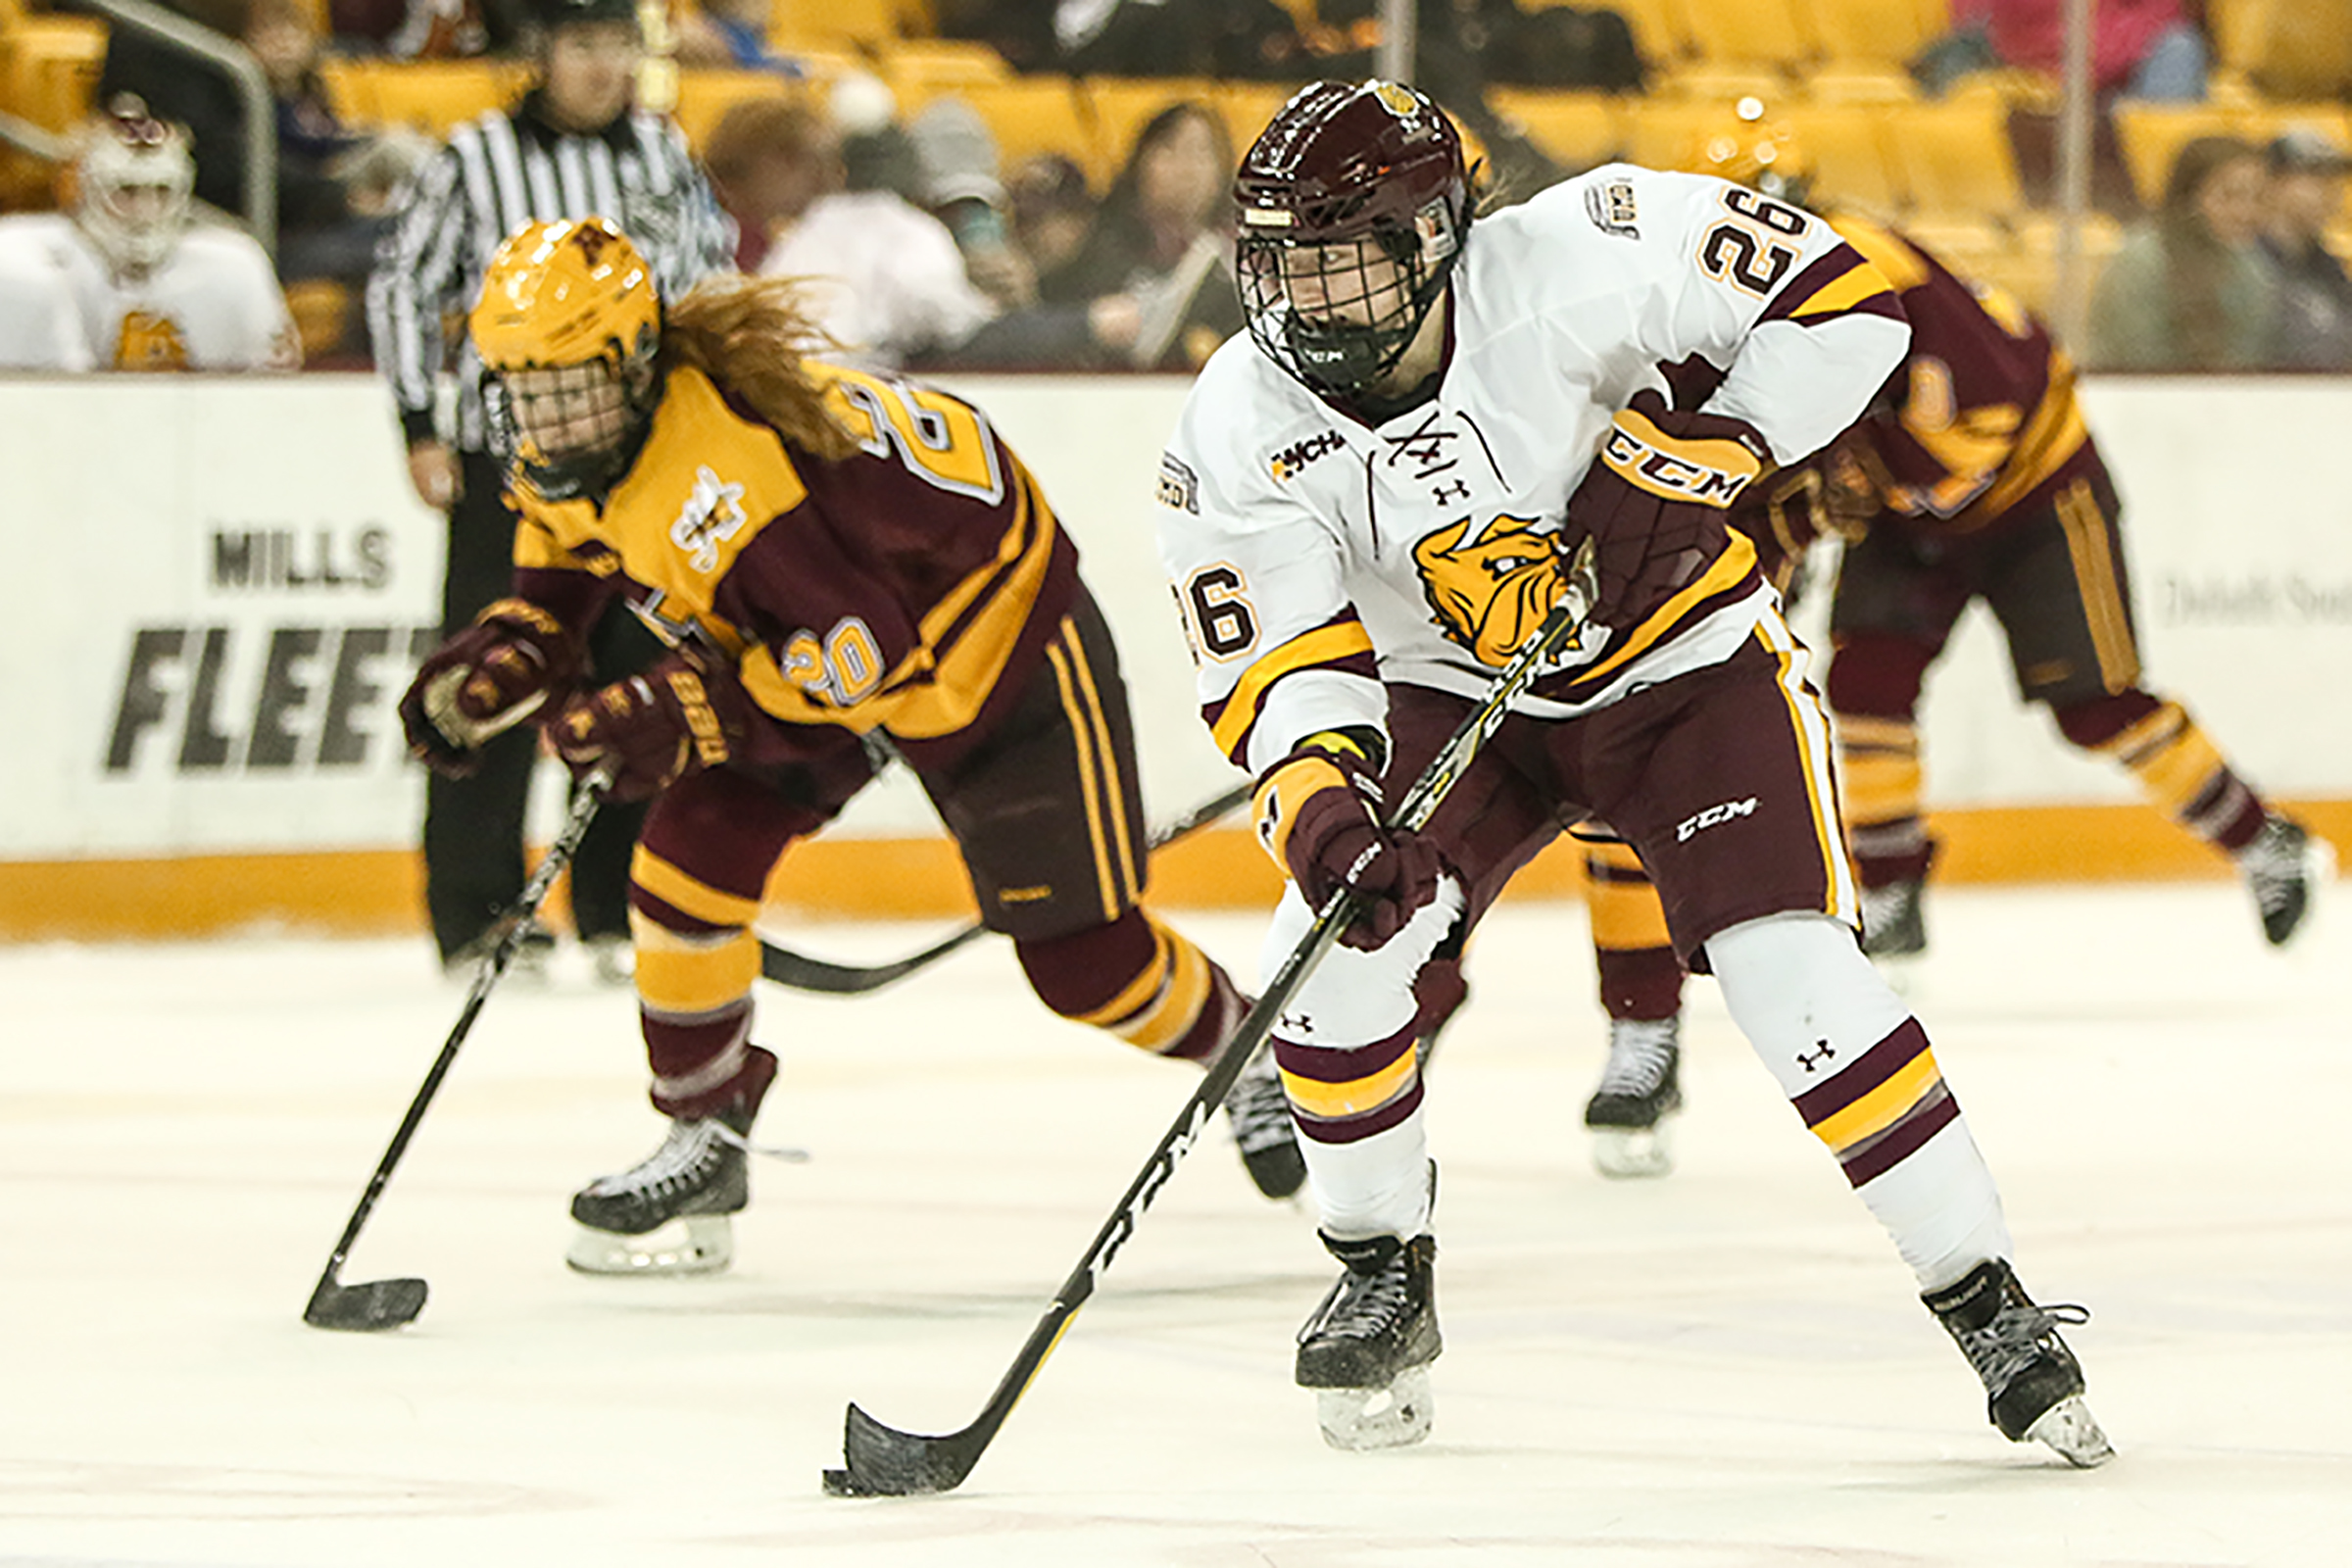 UMD right winger Ashton Bell scored the Bulldogs' lone goal of the afternoon in a close 2-1 loss to Minnesota at Amsoil Arena. Photo by Dave Harwig.